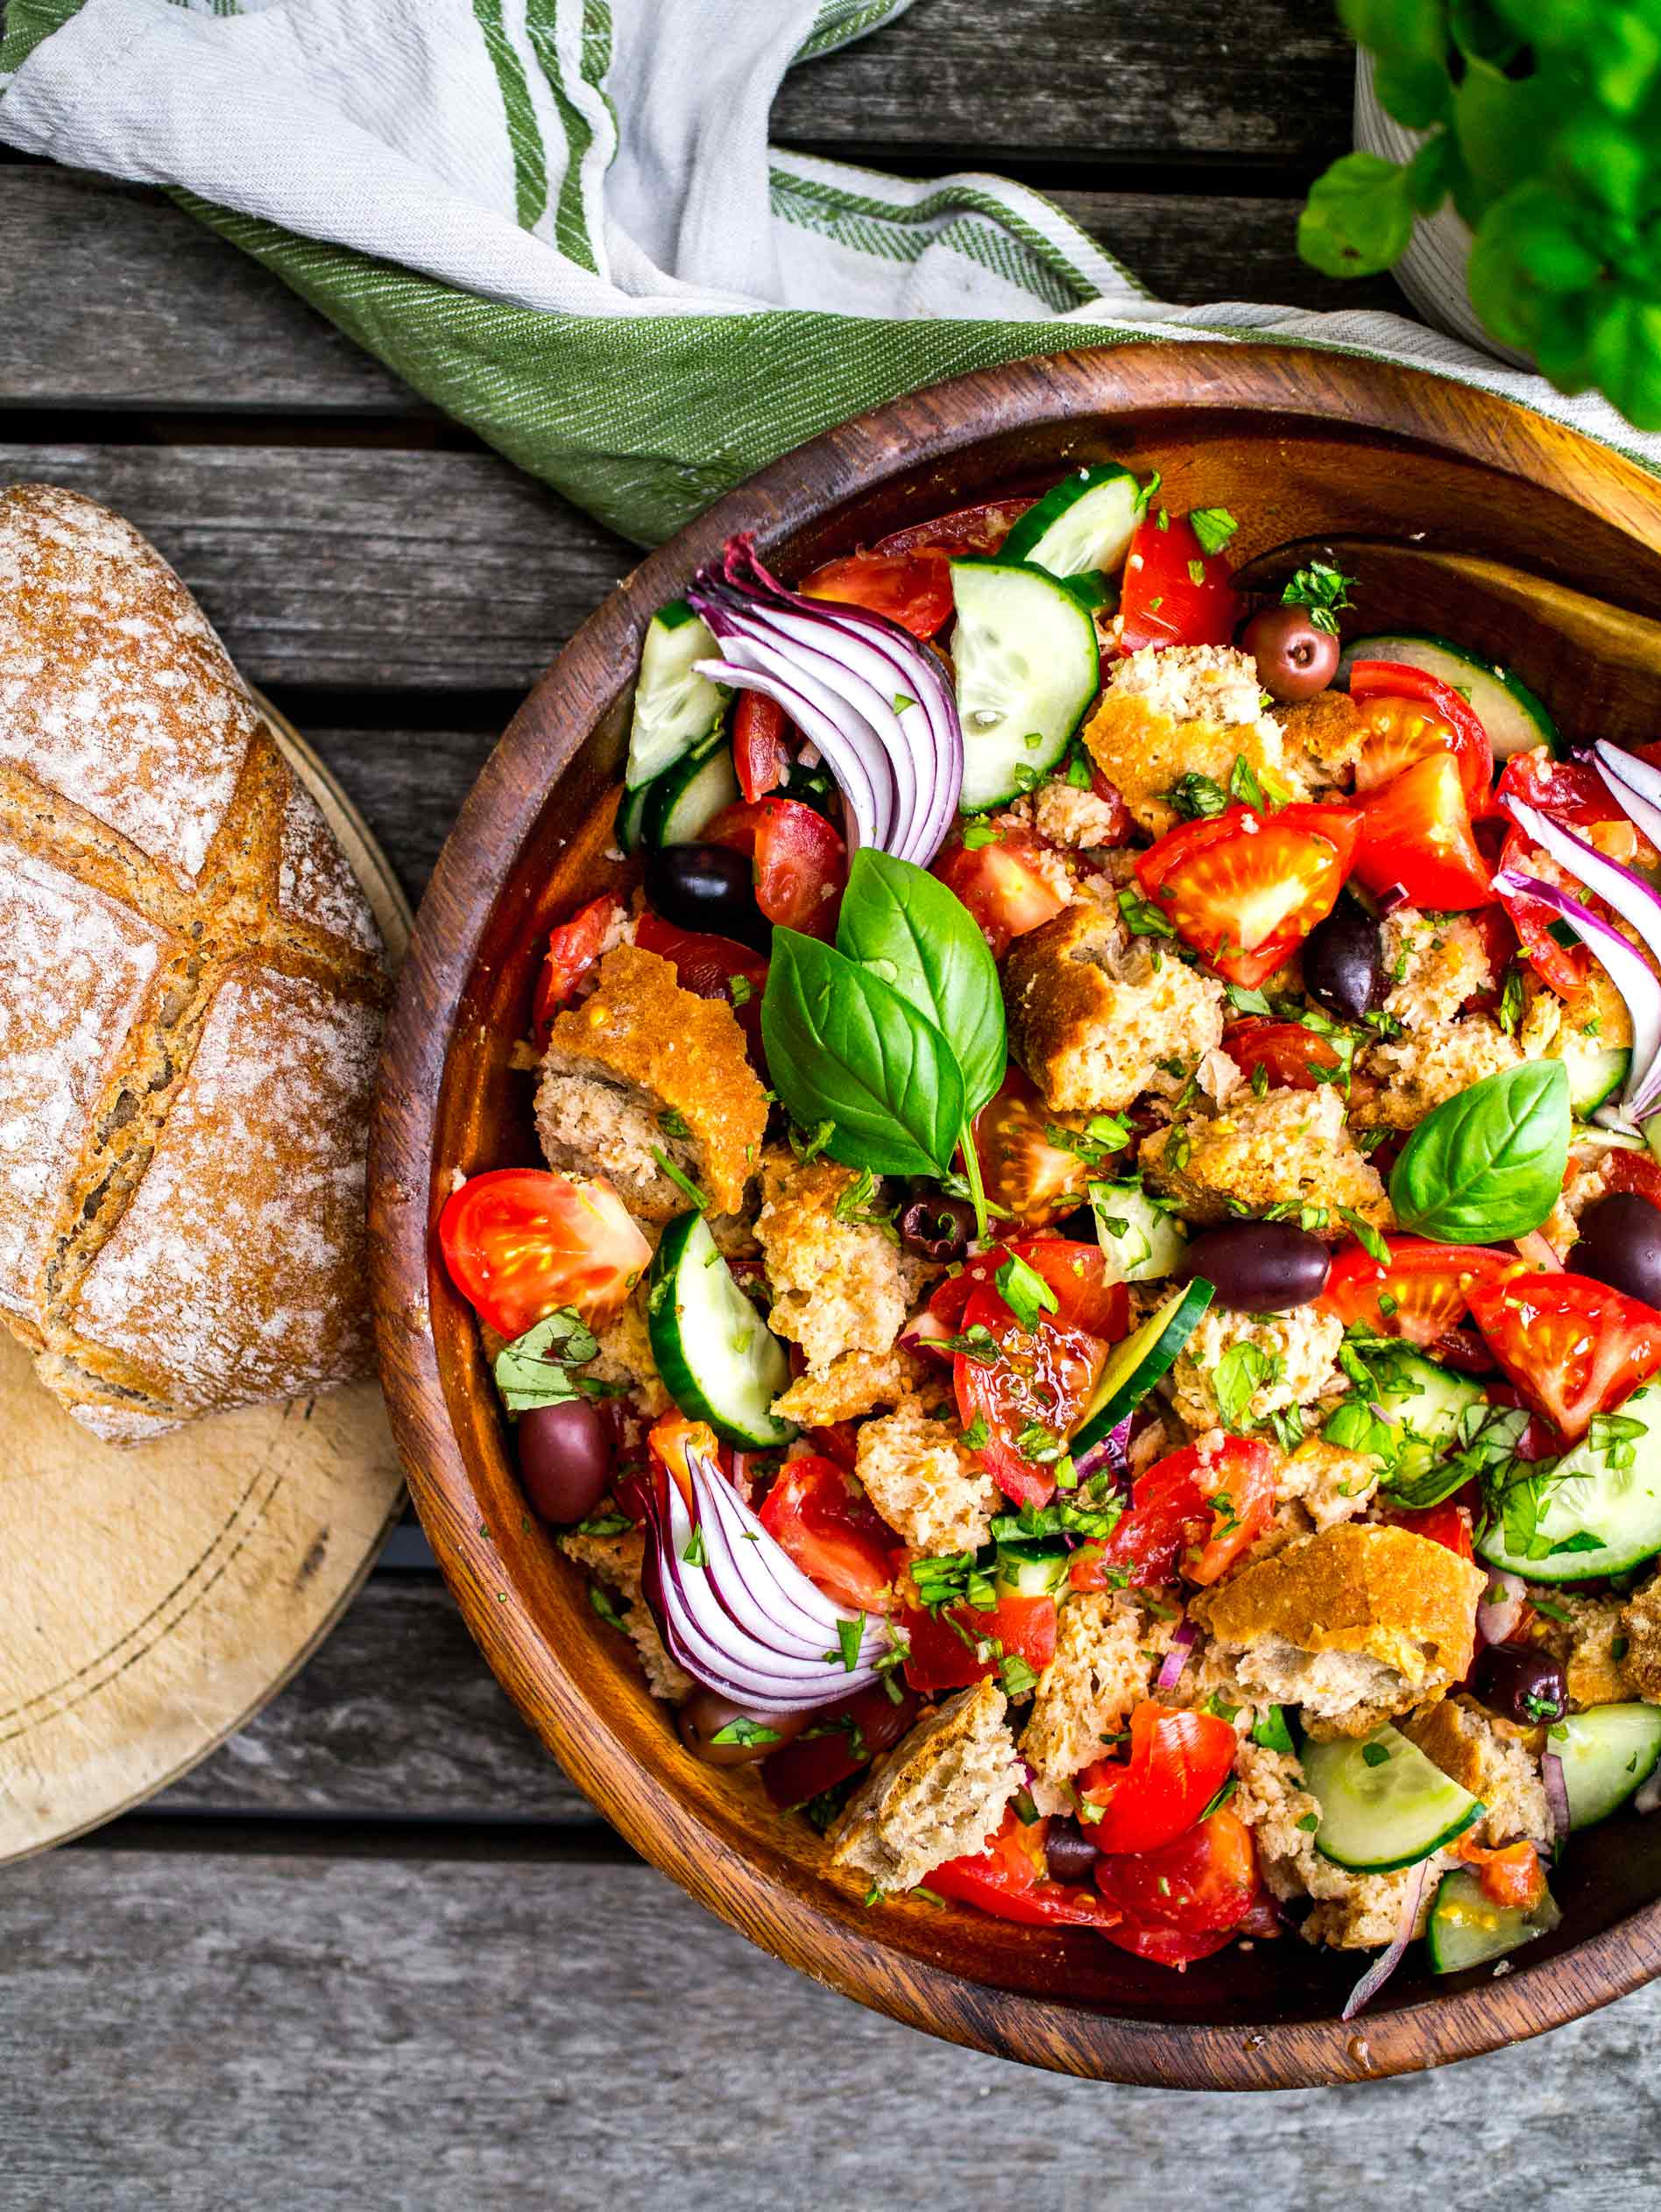 Panzanella || Discover Delicious || www.discoverdelicious.org || Vegan Food Blog